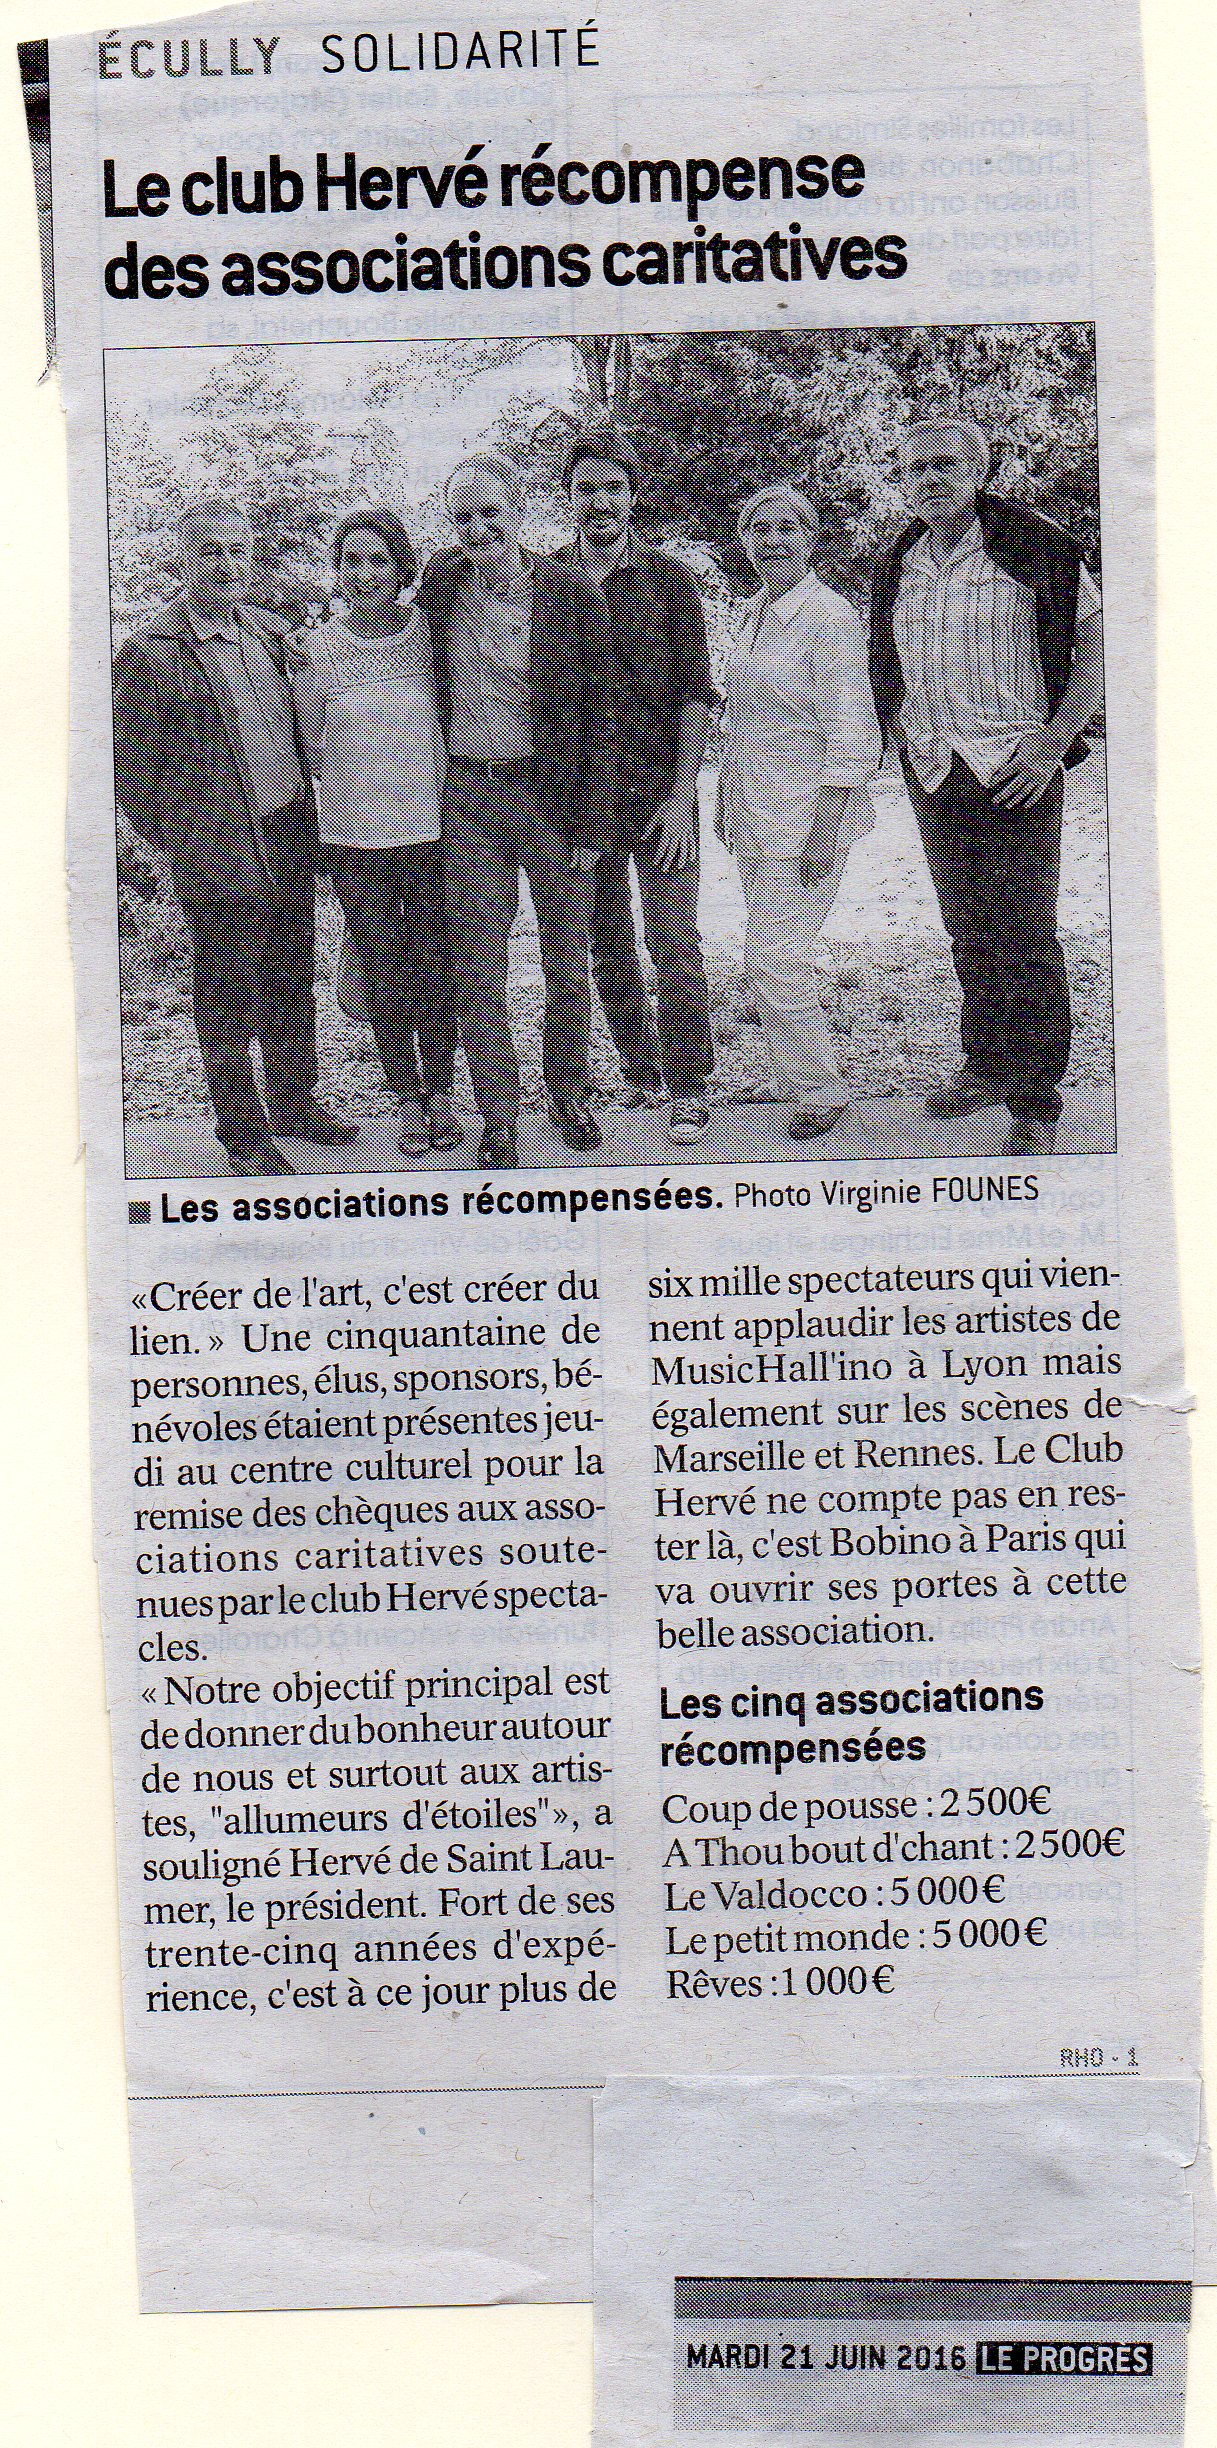 2016.06.21 Le club HERVE récompense des associations caritatives